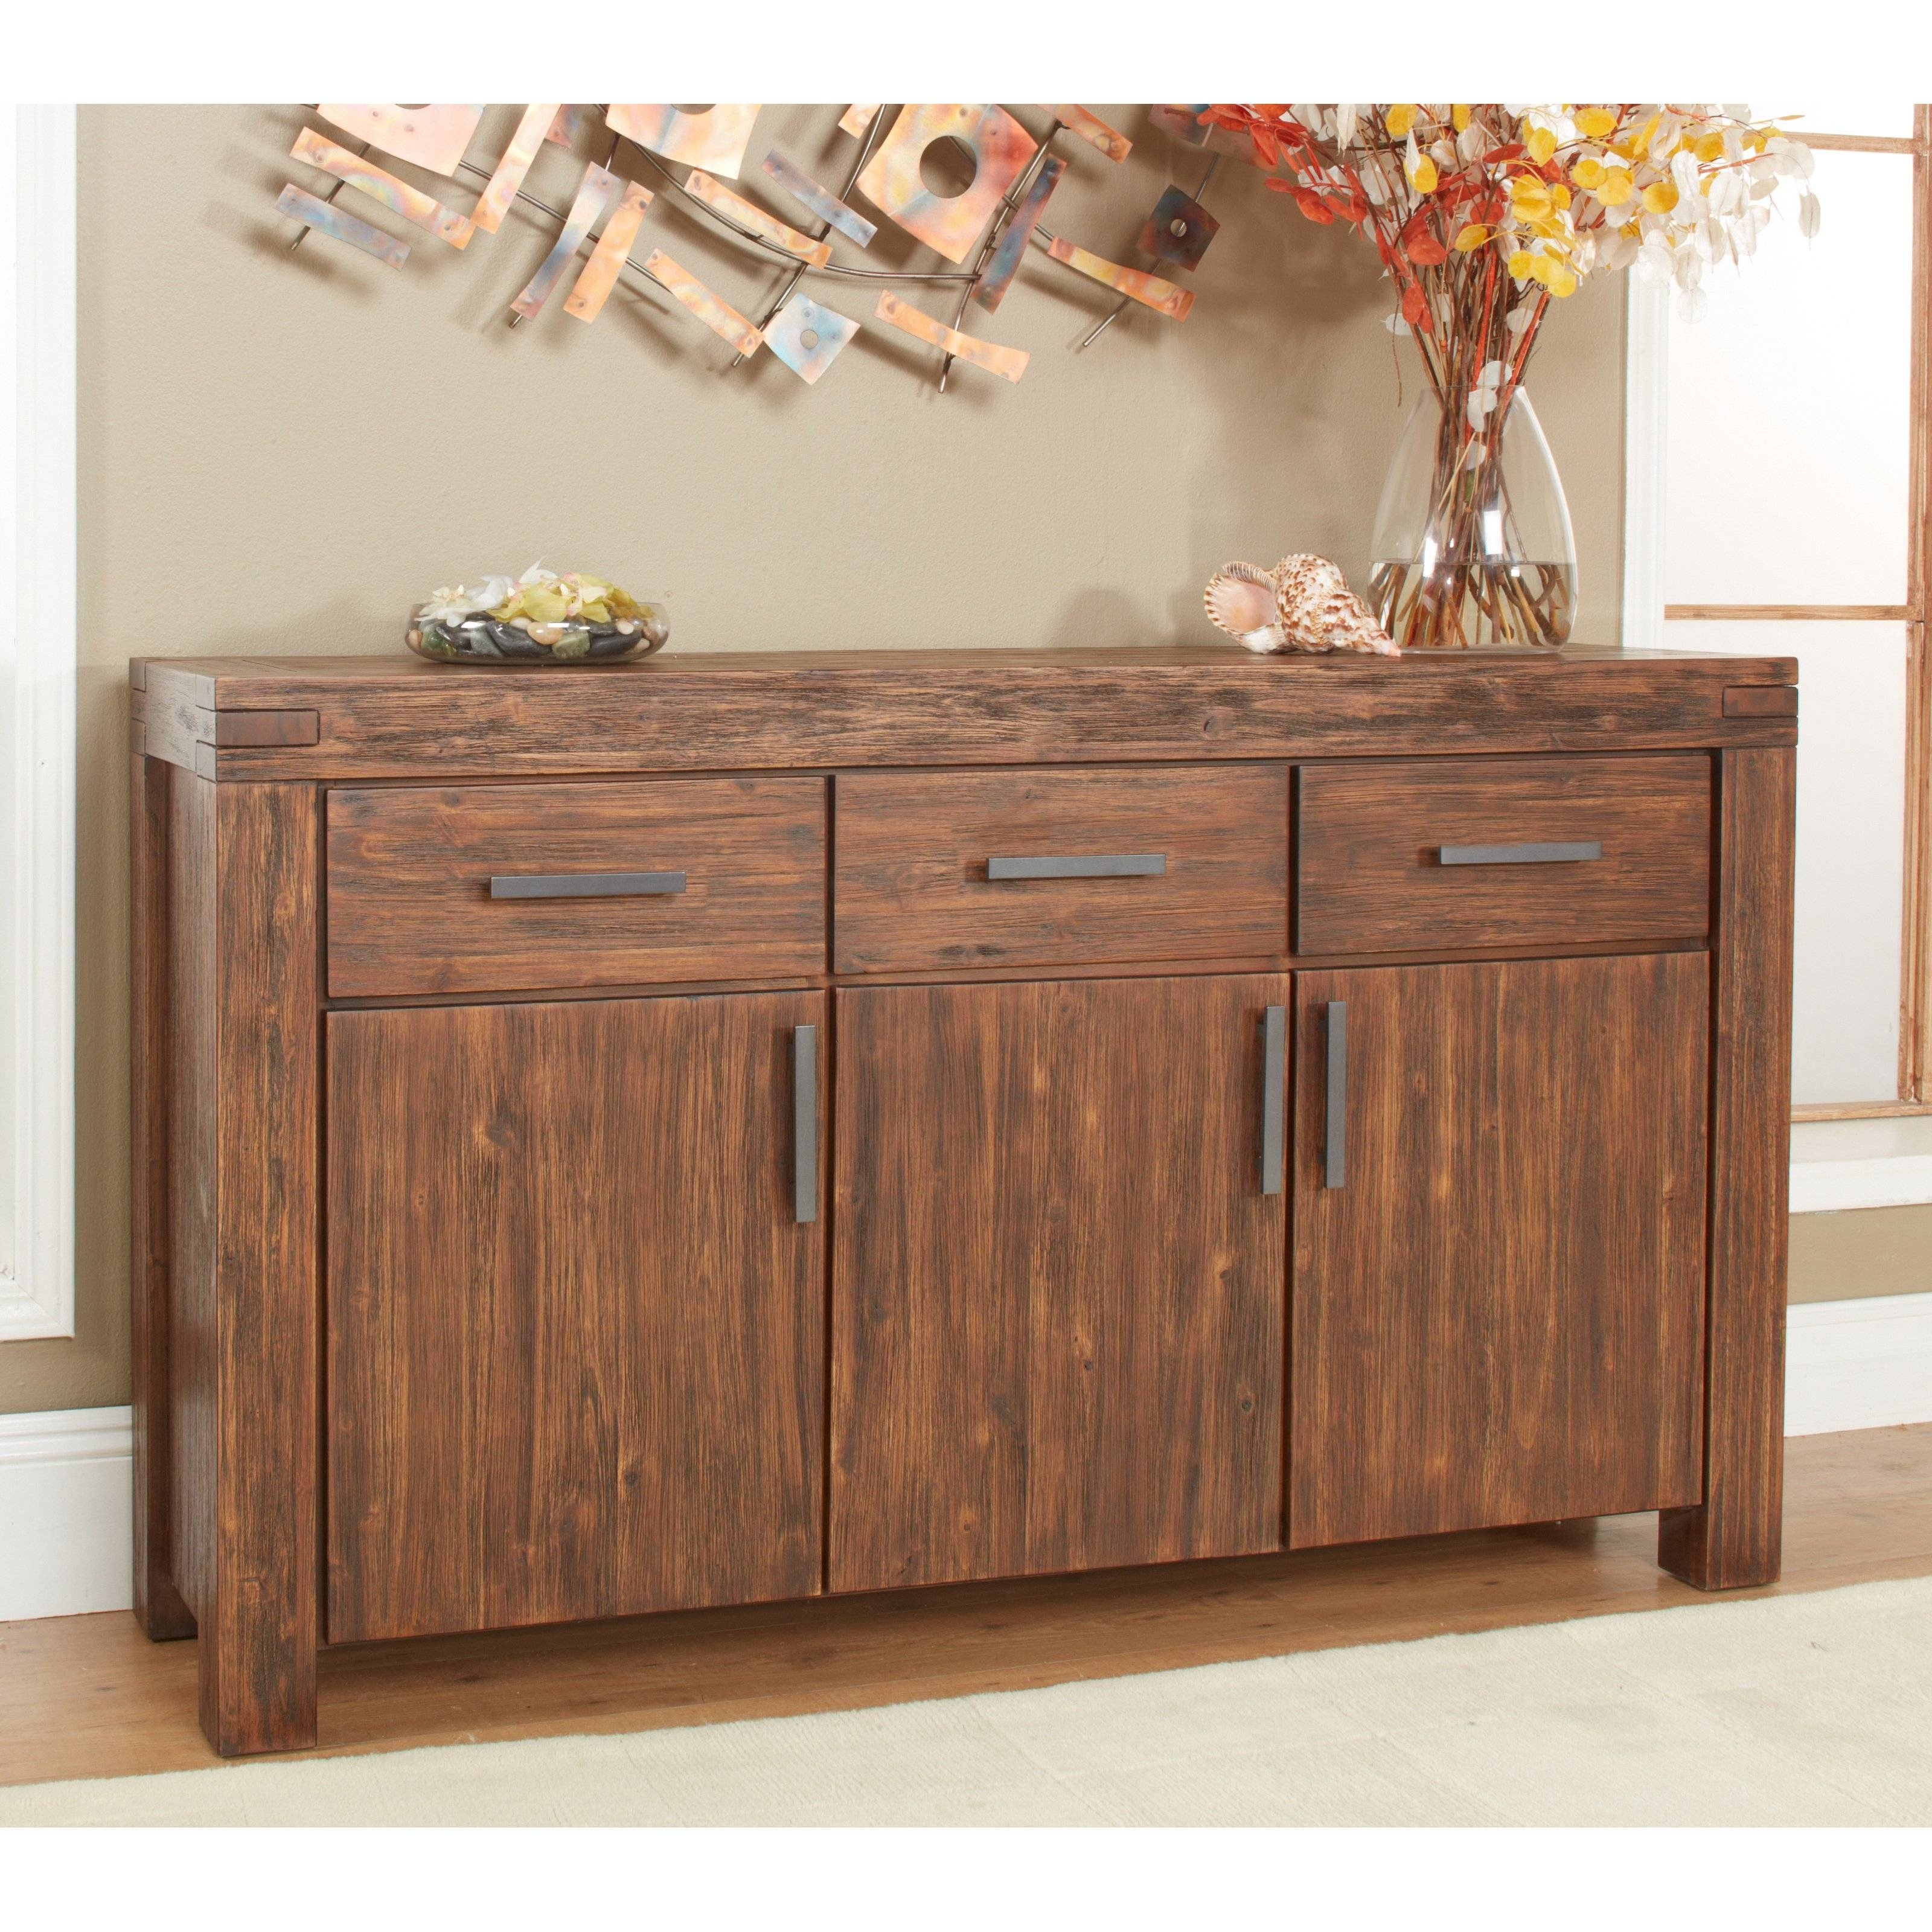 Sideboard Real 15 Photo Of Real Wood Sideboards